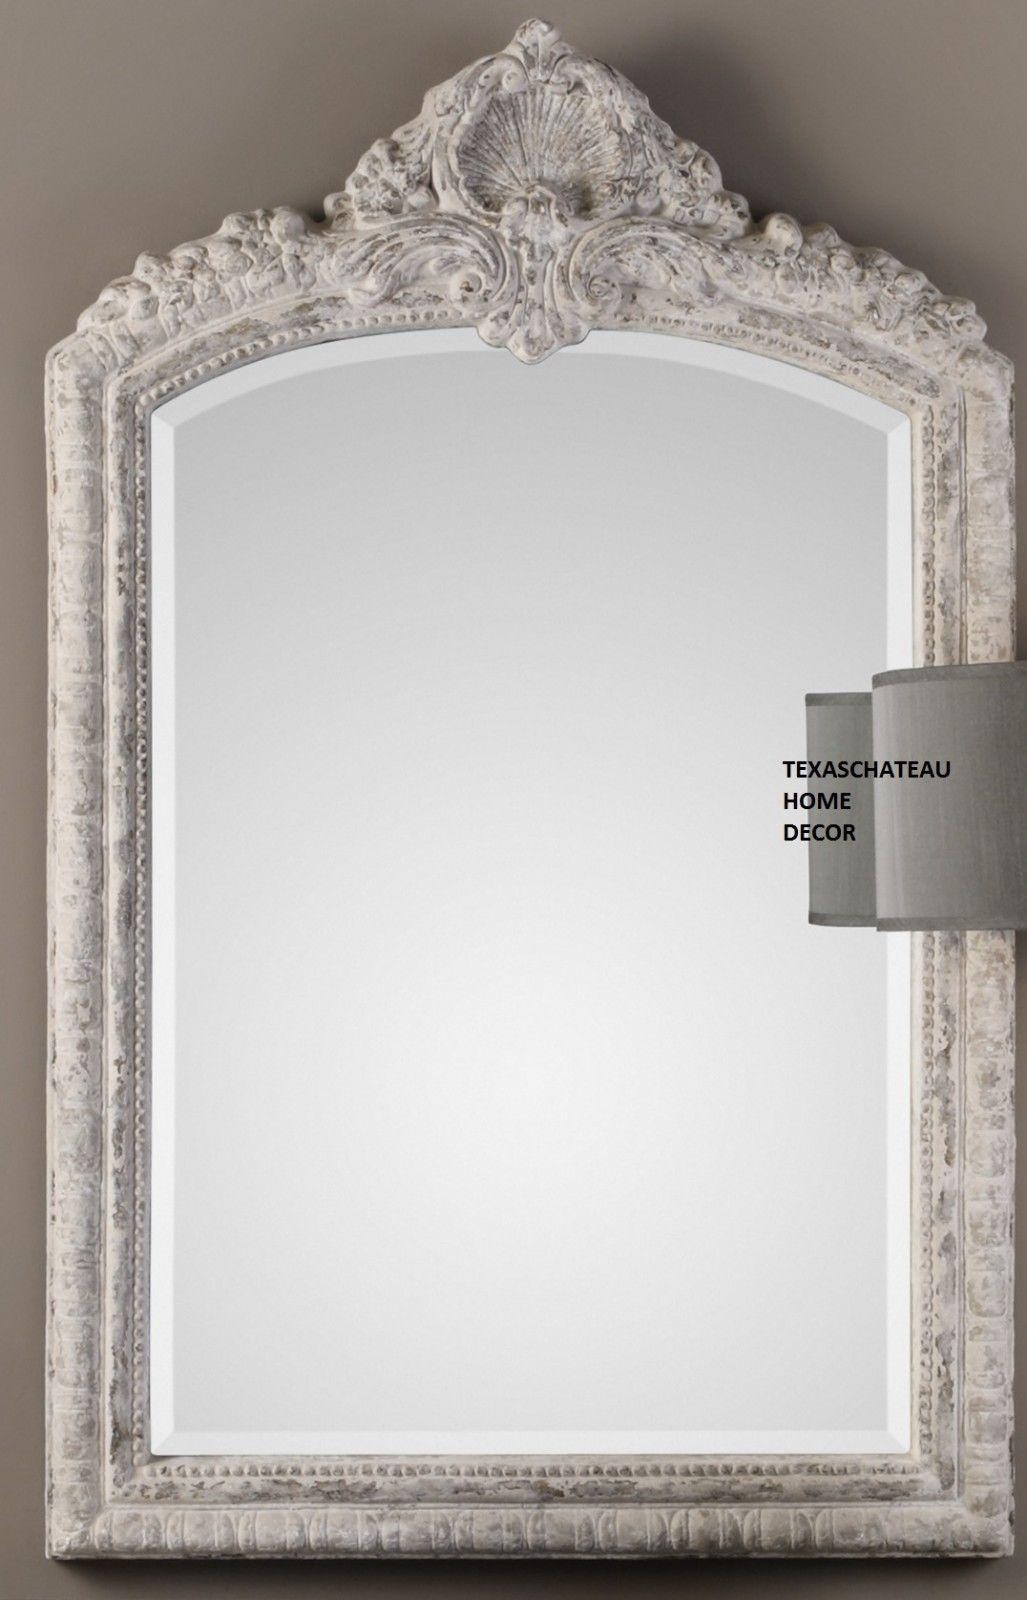 Ornate Antique Cream Arched Wall Mirror French Vanity Bath With Regard To Antique Cream Wall Mirrors (View 8 of 20)